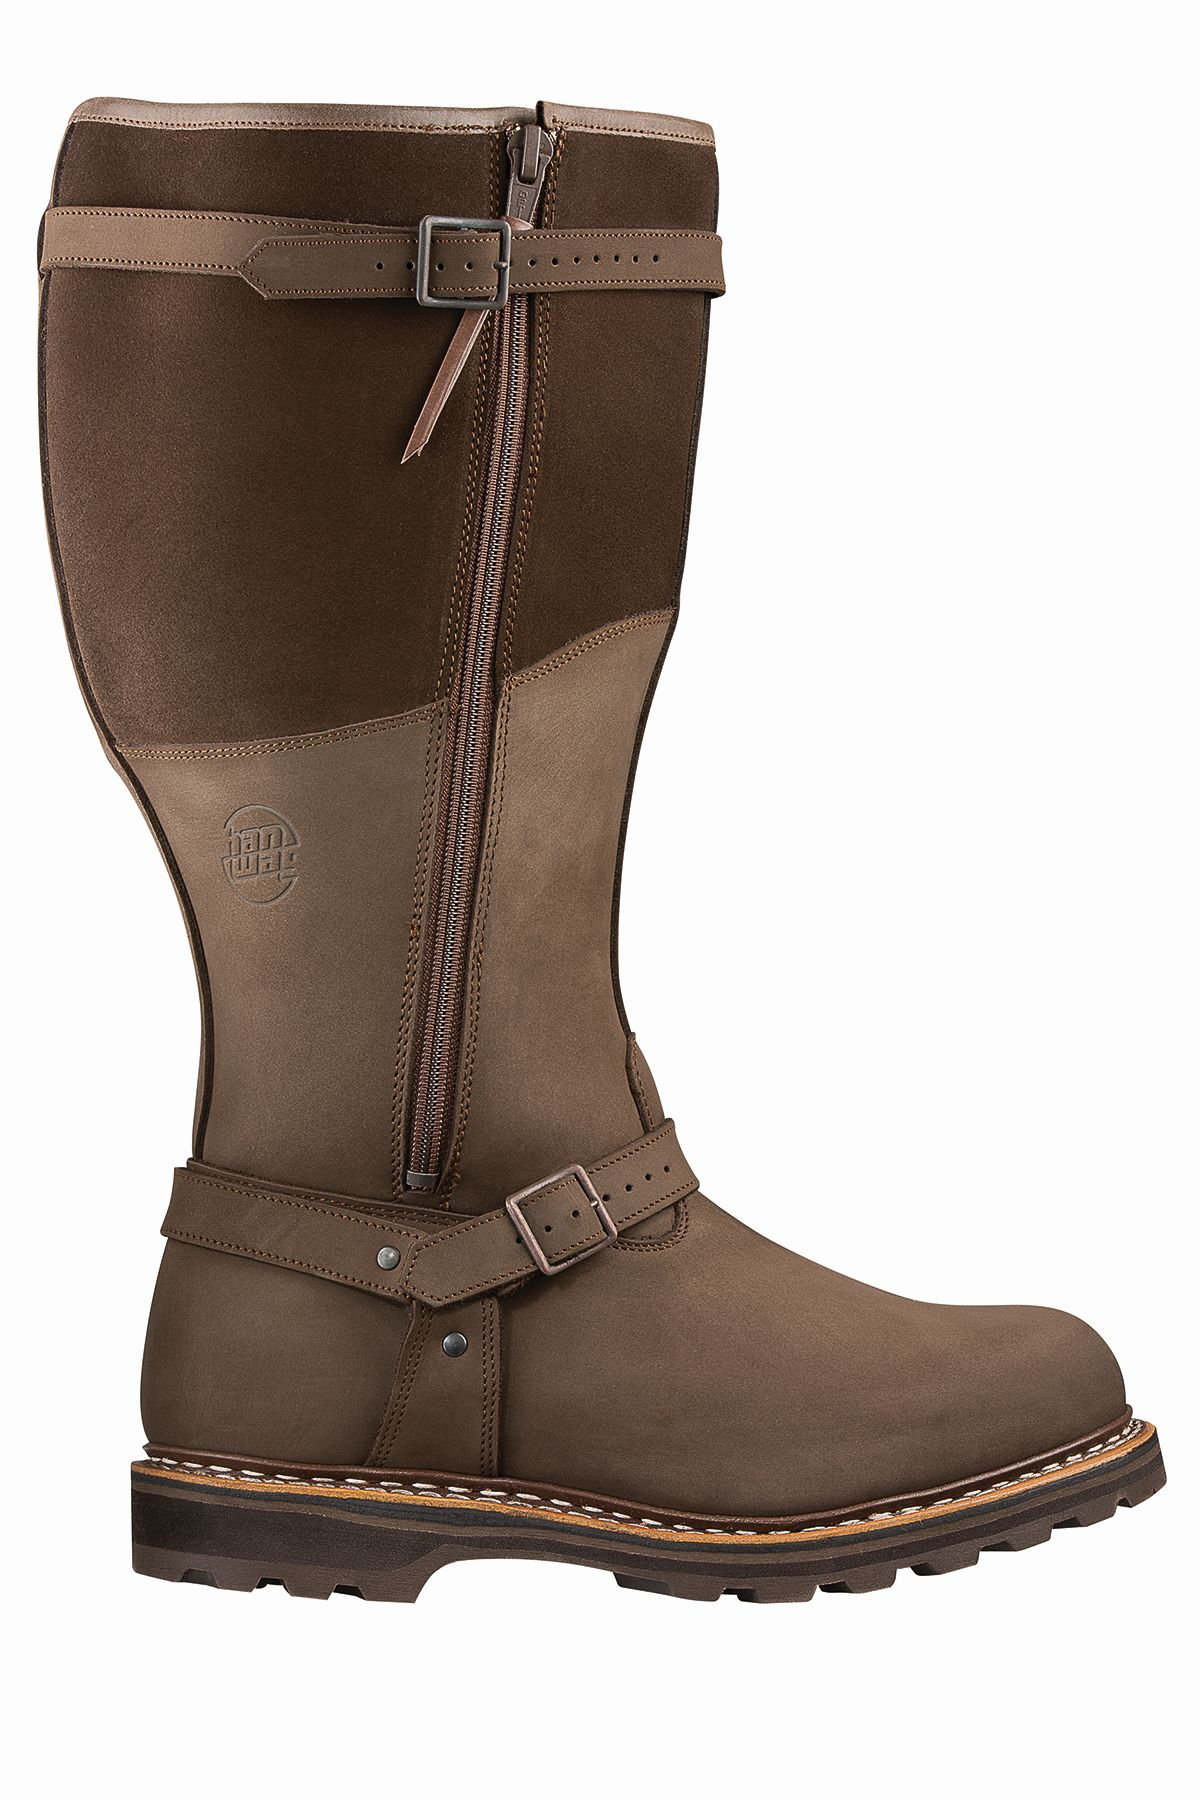 Hanwag Grizzly Top Breit/Broad Lady Brown – Erde-30